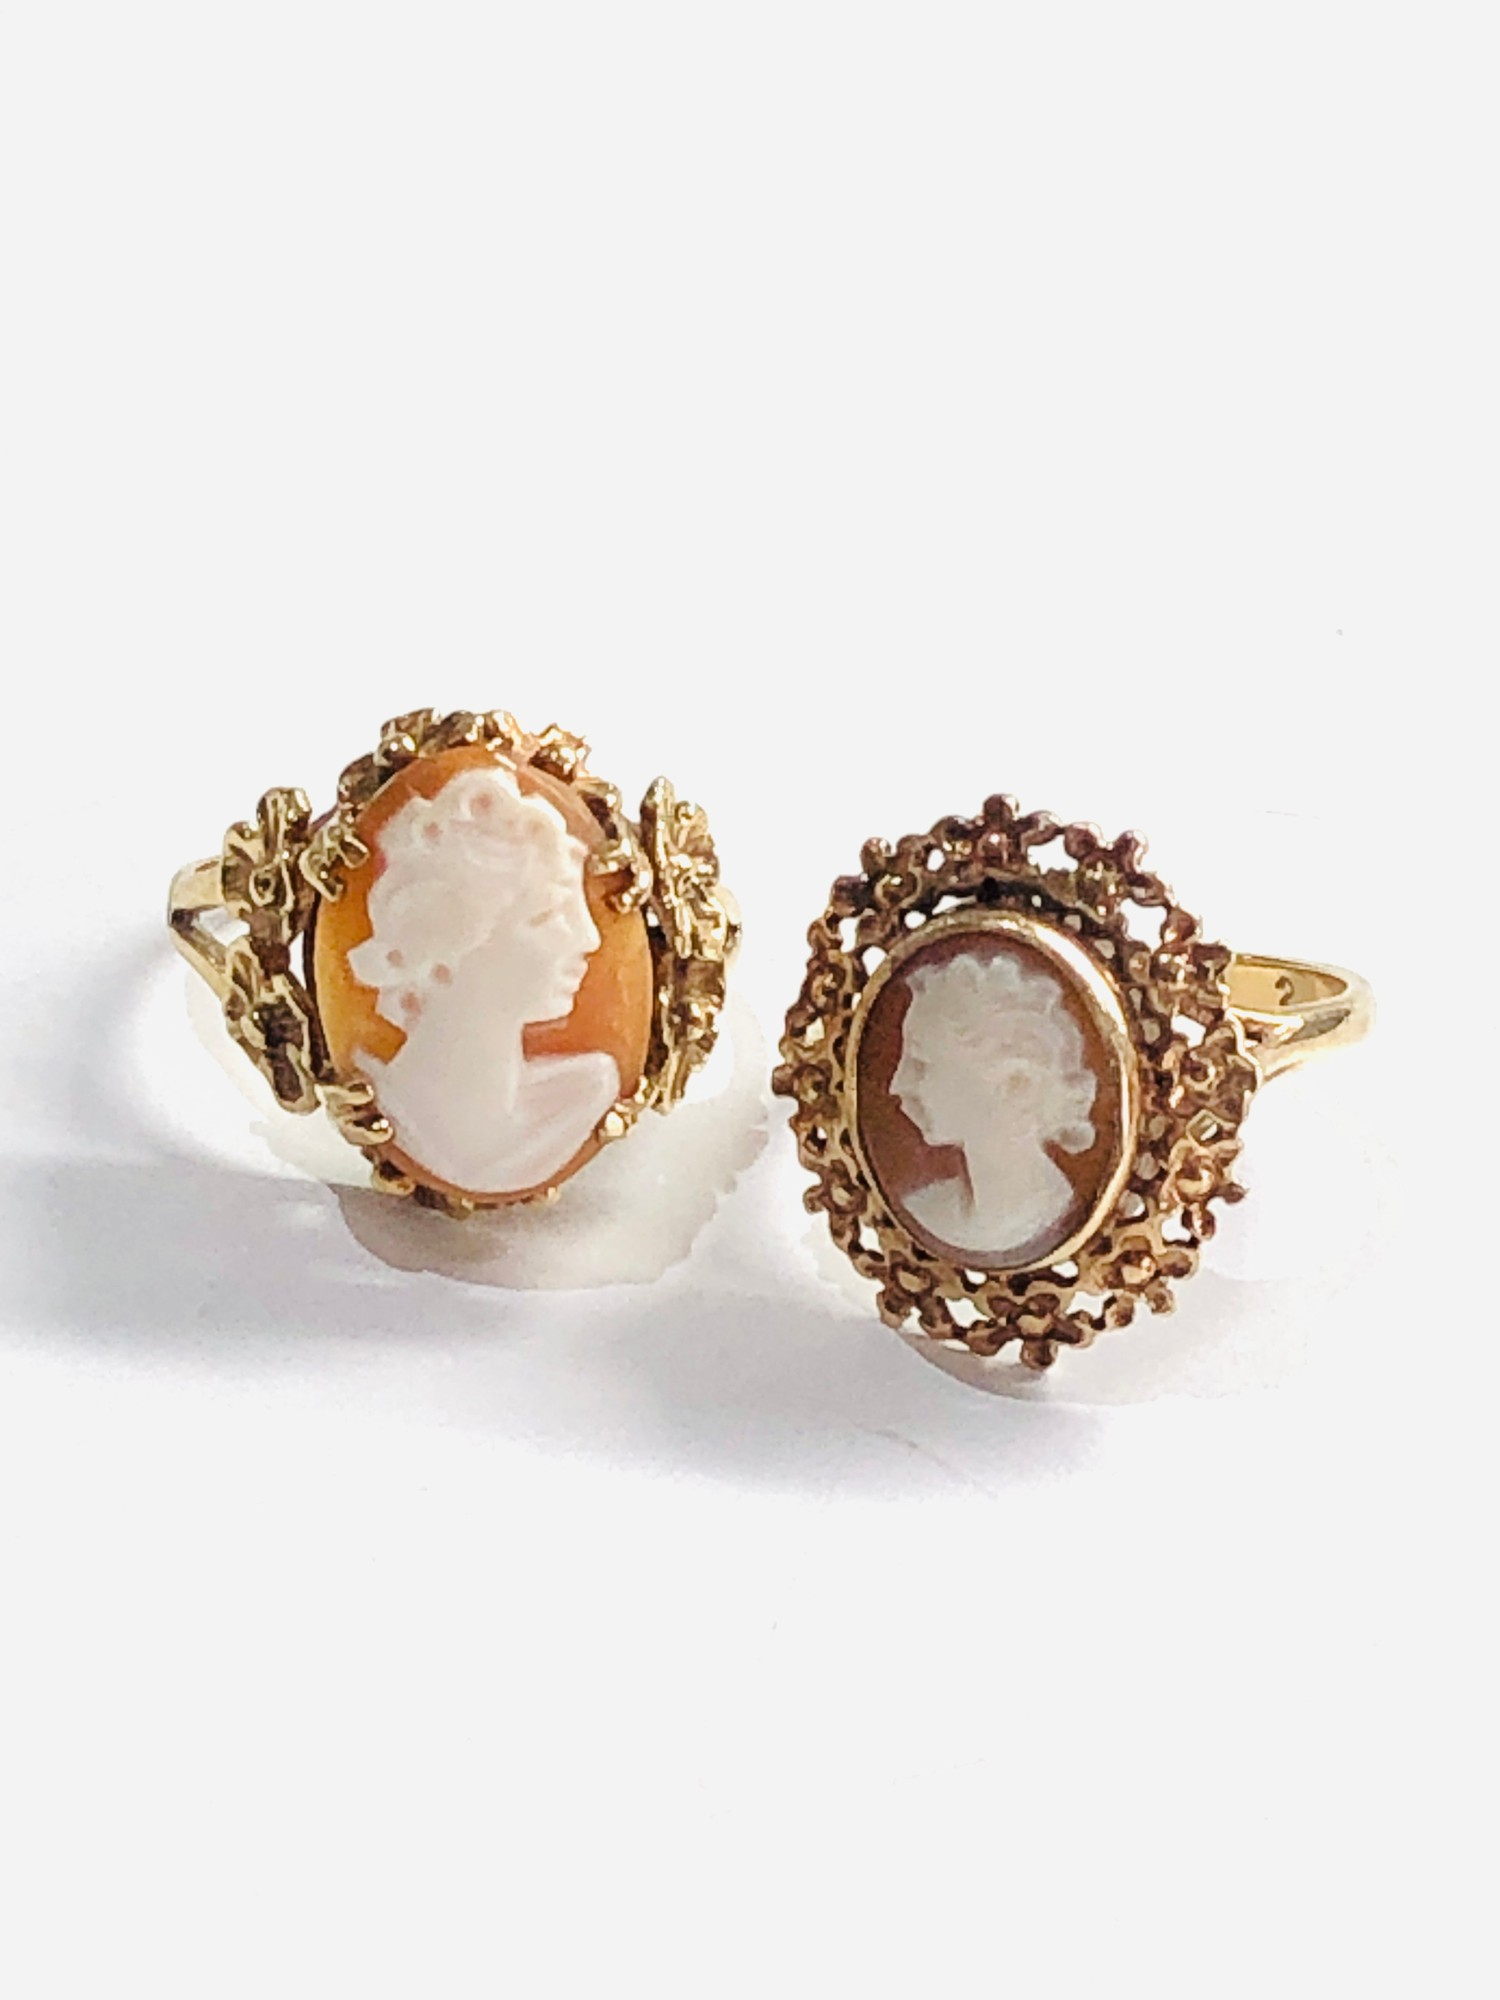 2 x 9ct gold vintage cameo floral framed rings 6g - Image 2 of 3